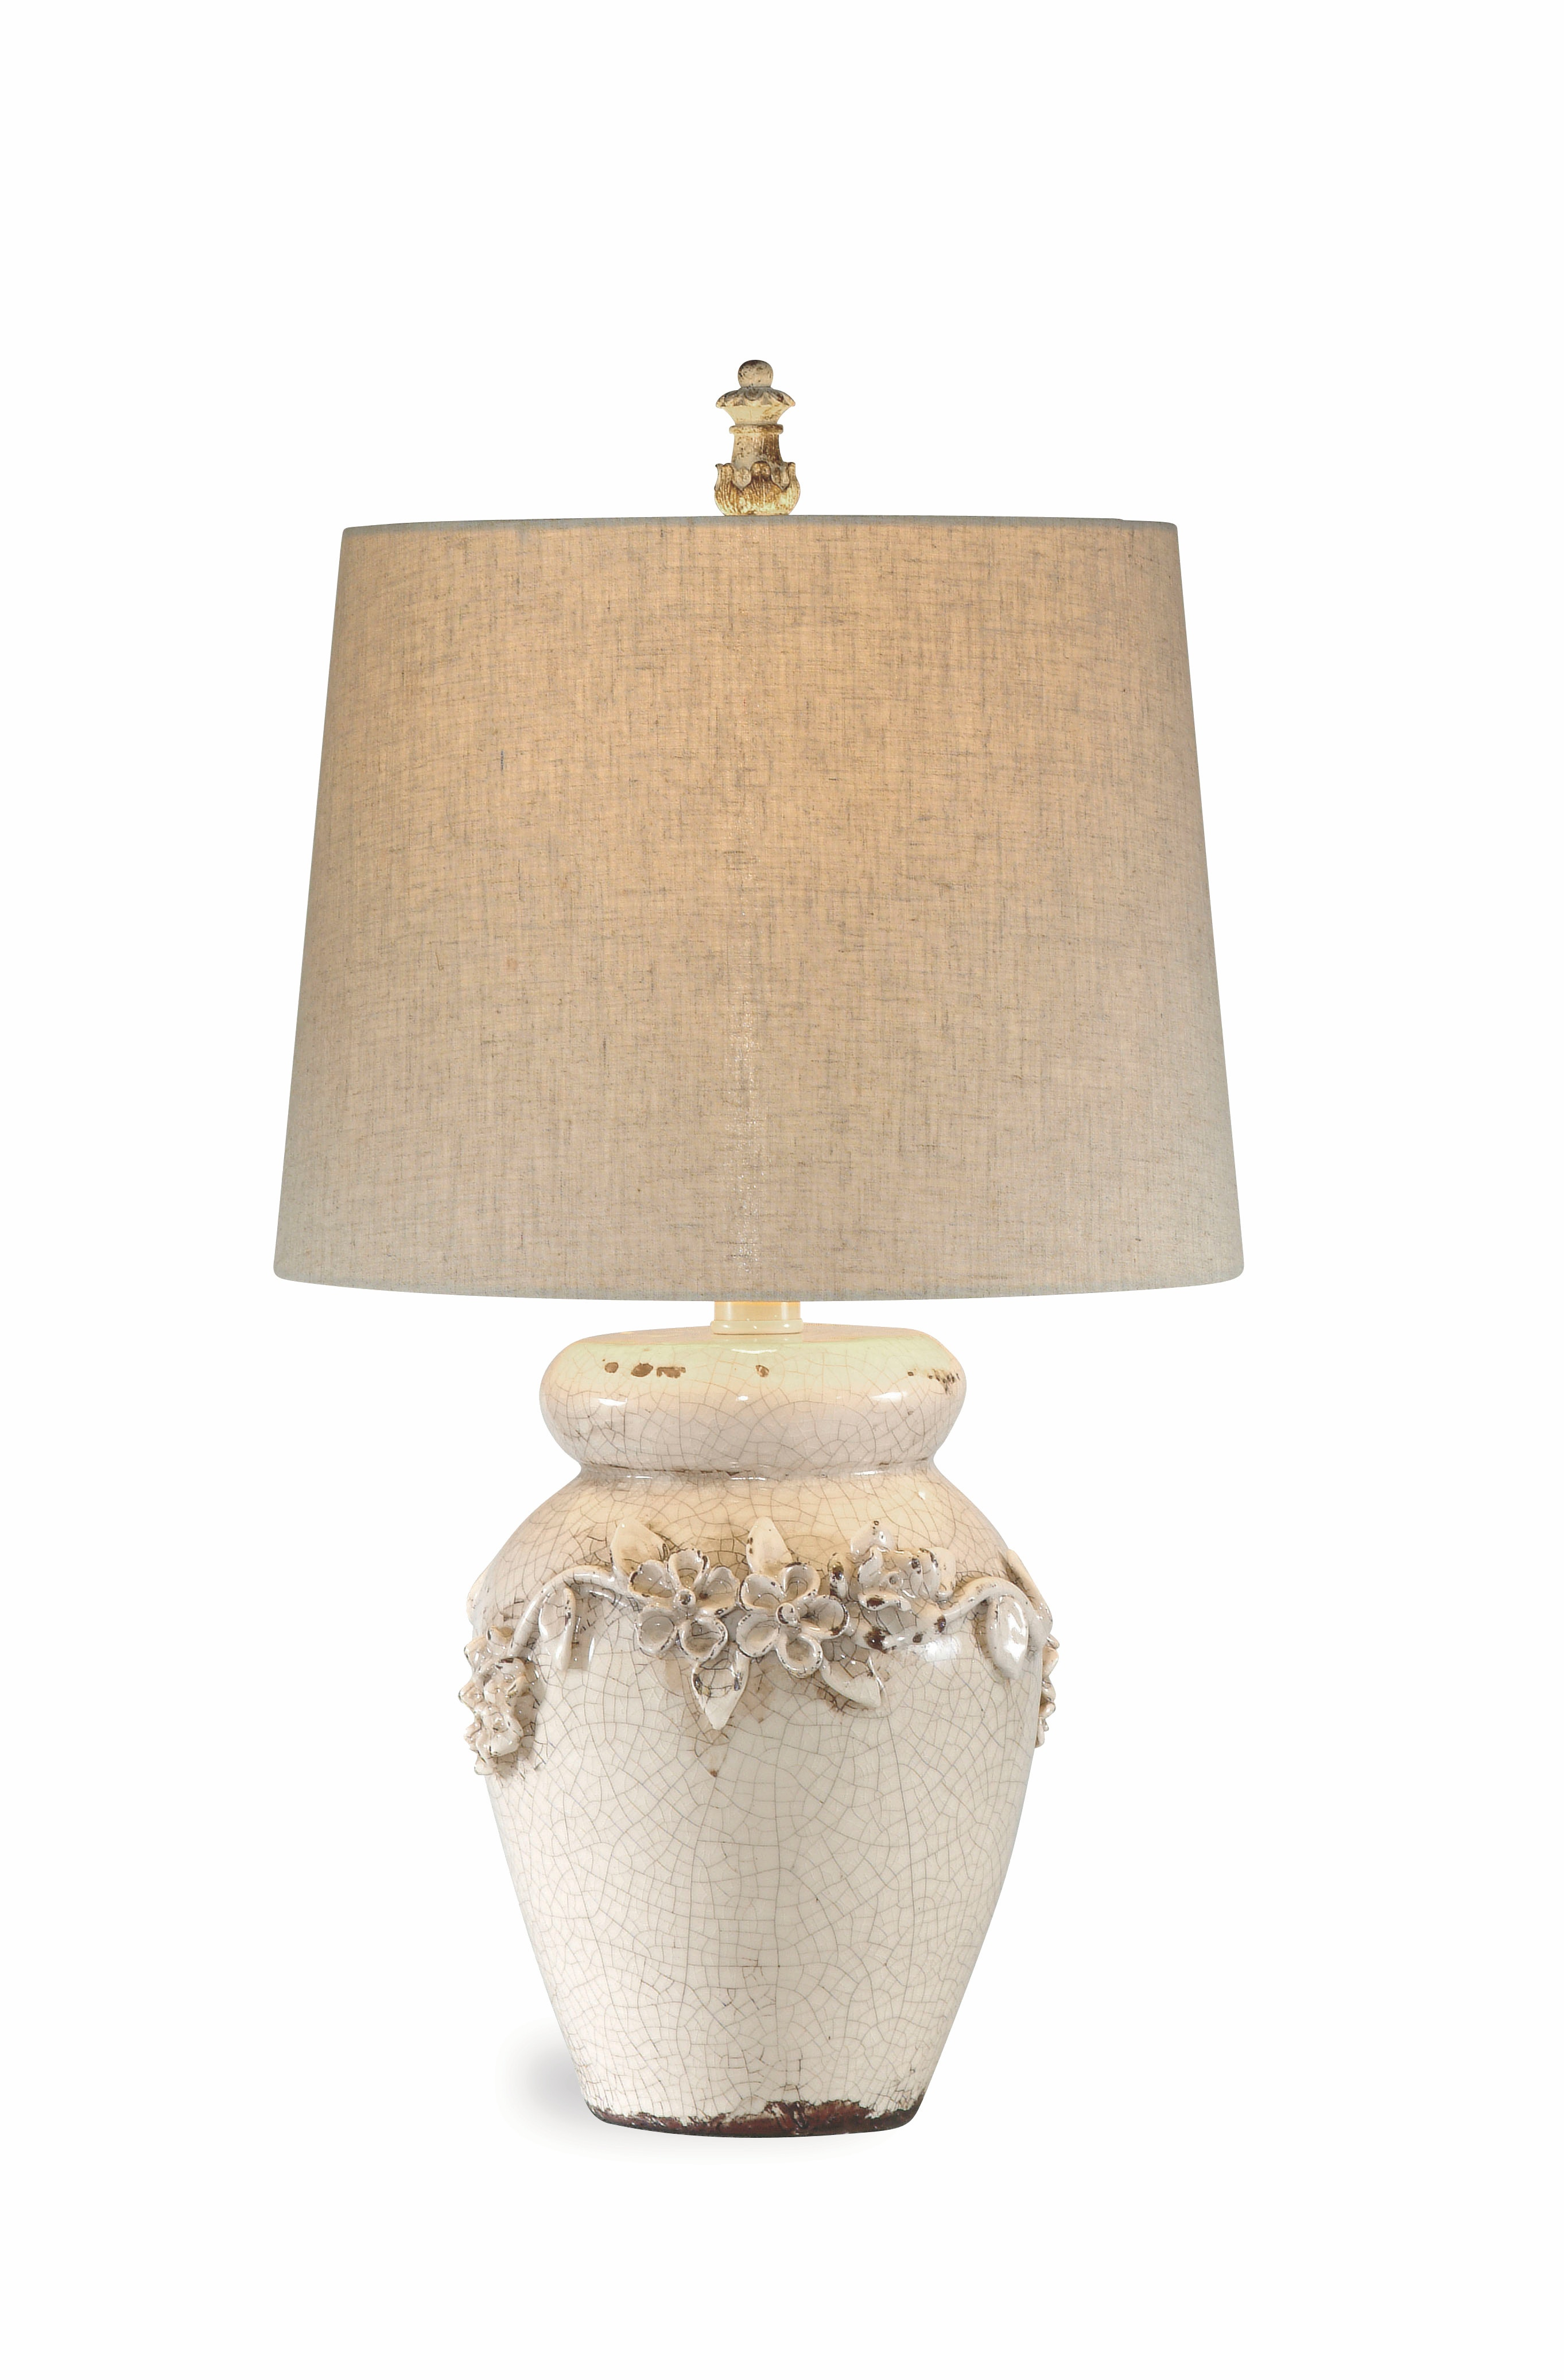 Bassett Mirror Company Accessories Eleanore Table Lamp L2321TEC At Bacons  Furniture